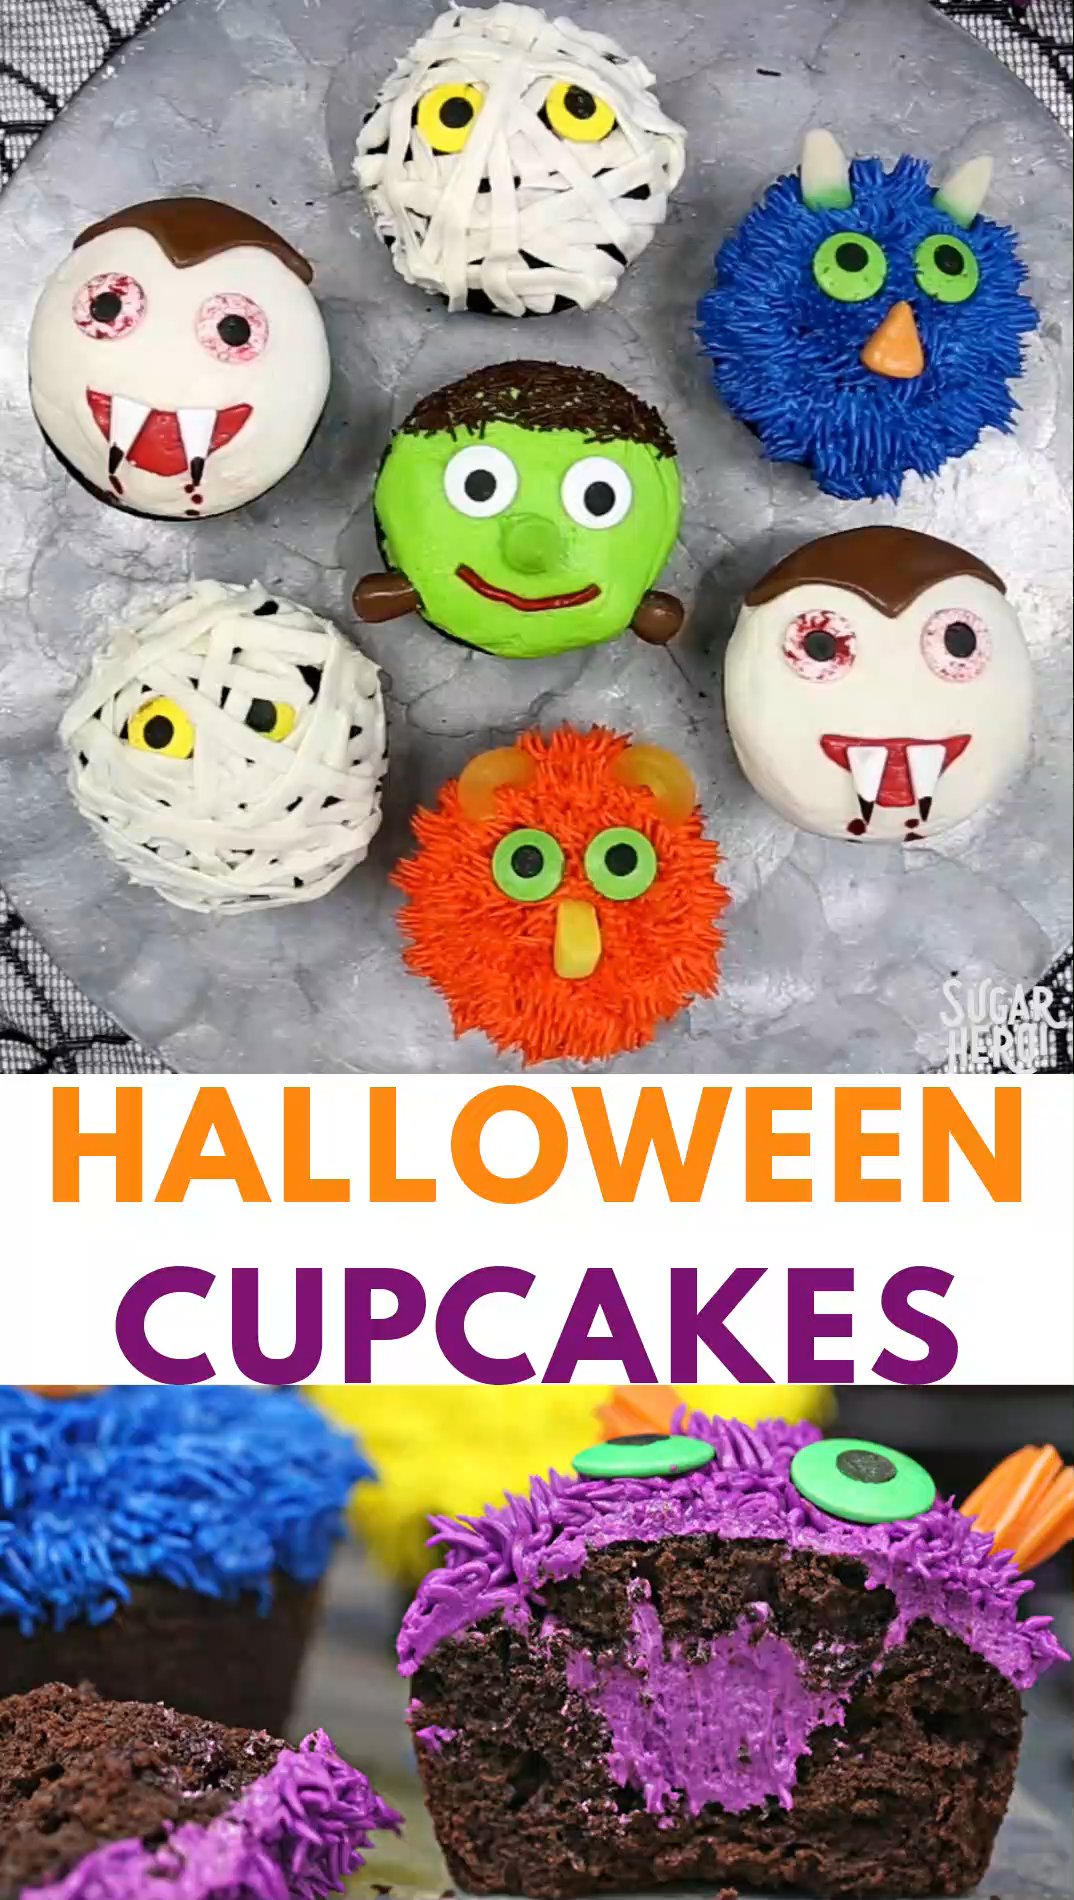 Stuffed Halloween Cupcakes Video  #cookiesandcreamfrosting